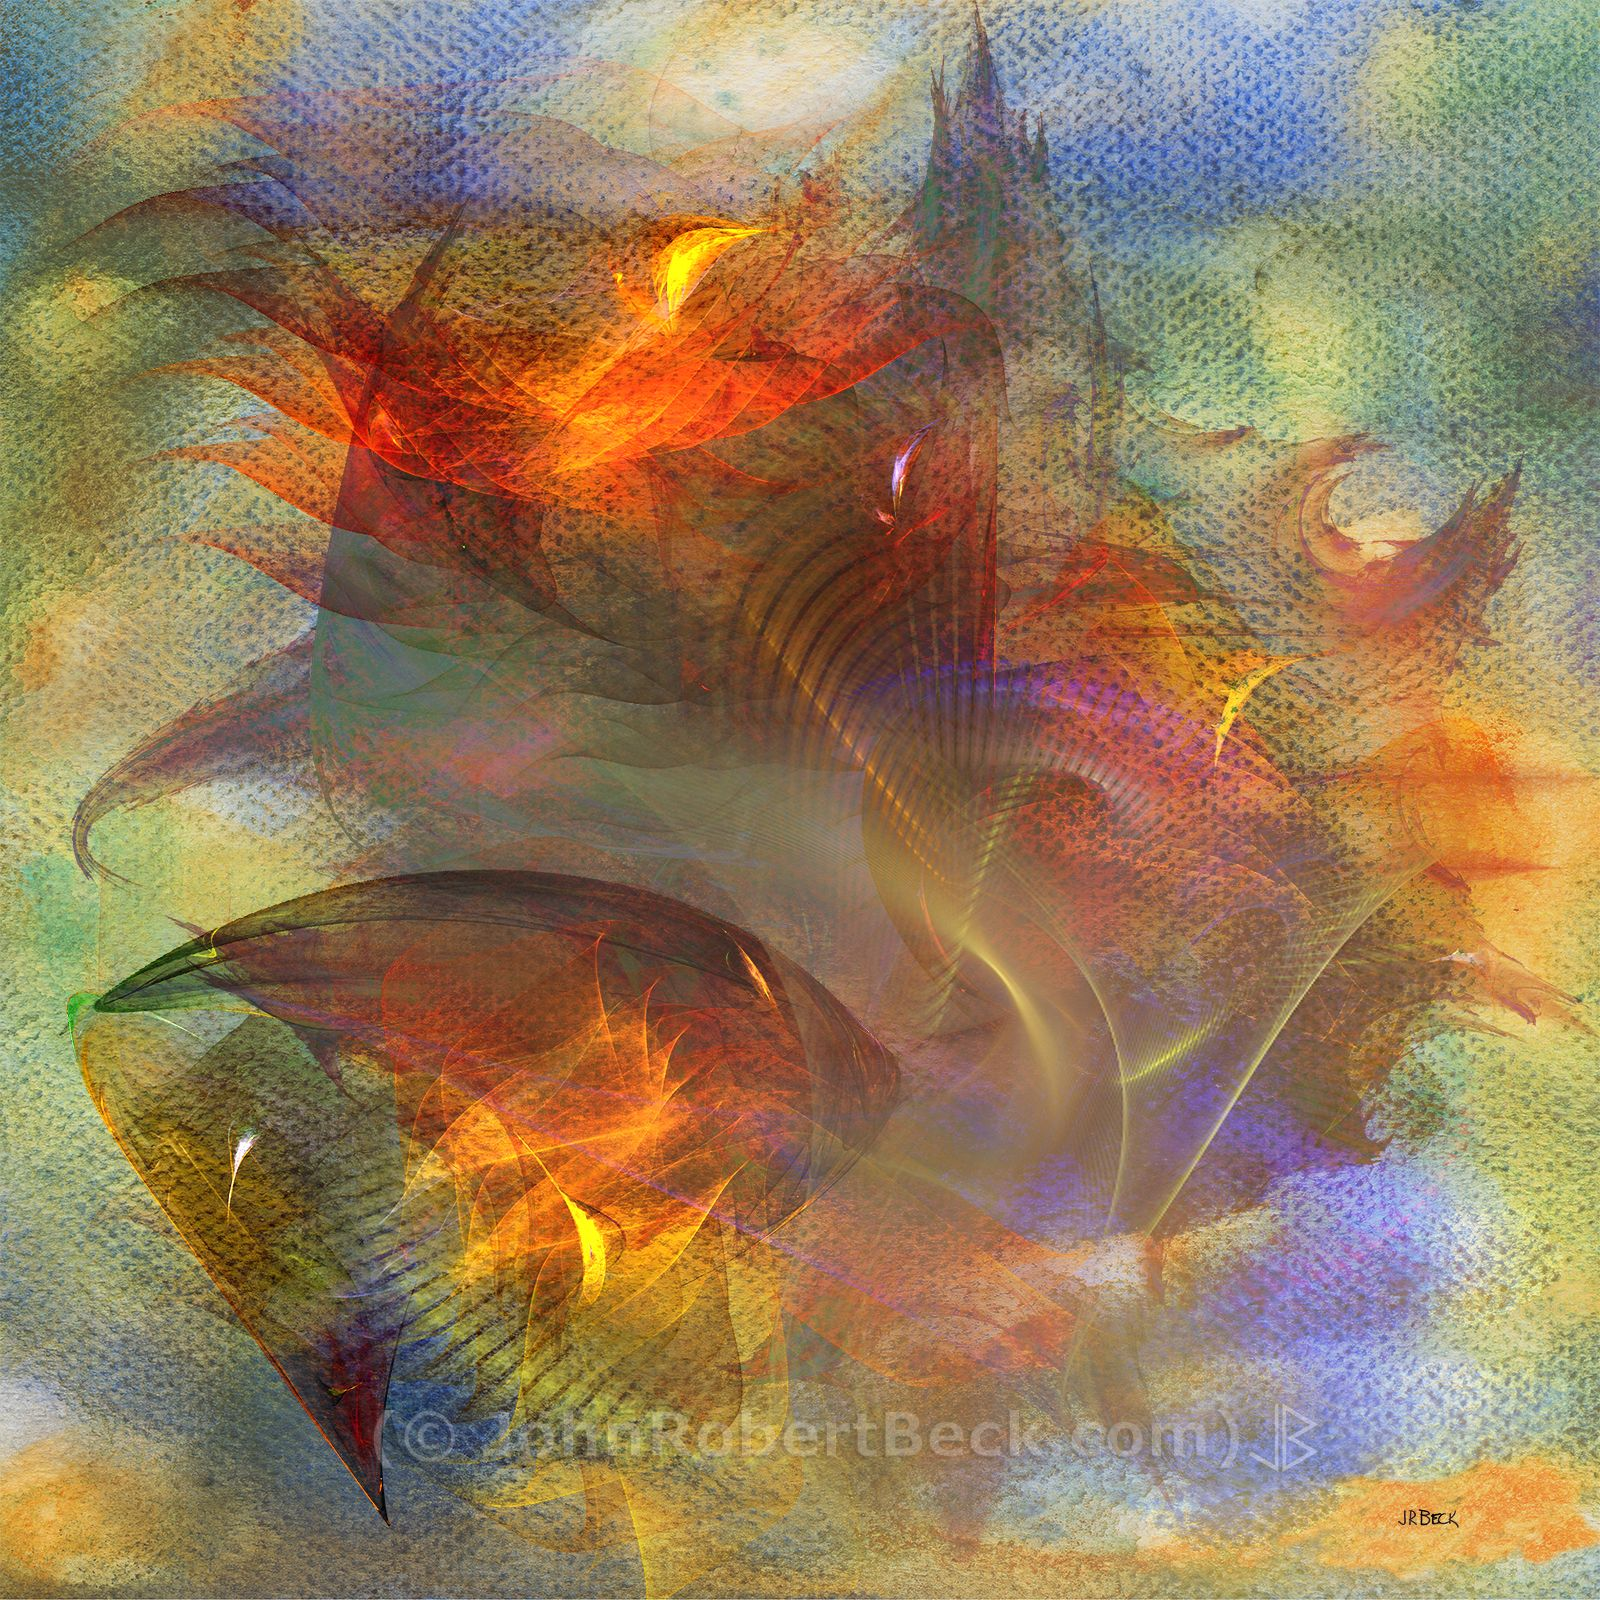 Autumn Ablaze (Square Version) by John Robert Beck. This abstract art was created in 2010. The watercolor background was first made, then digital fractals were added on top of the background.